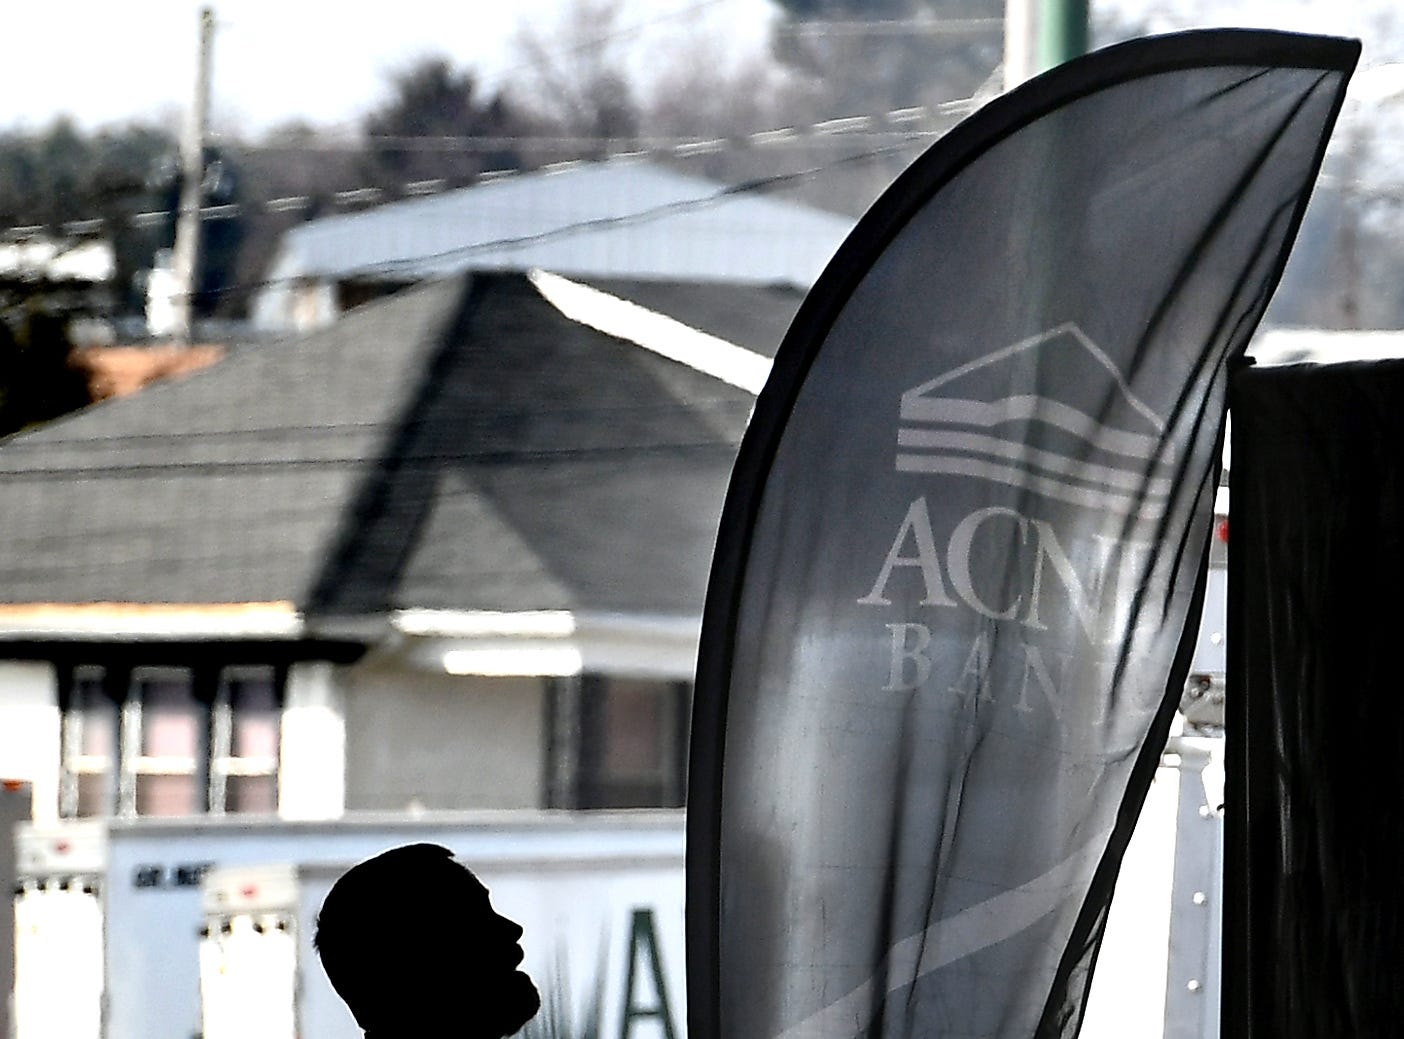 ACNB Bank employees Kevin Stultz erects a feather banner while he and Denise Descheemaeker, left, assemble the company's display at the 51st Annual Home & Garden Show at The York Expo Center Arena Thursday, Feb. 7, 2019. The show runs Feb. 8-10. The hours are Friday 1 p.m. to 8 p.m.; Saturday 9 a.m. to 7 p.m and Sunday 10 A.m. to 3 p.m. Admission for adults is $8 and kids under 18 get in free. Bill Kalina photo